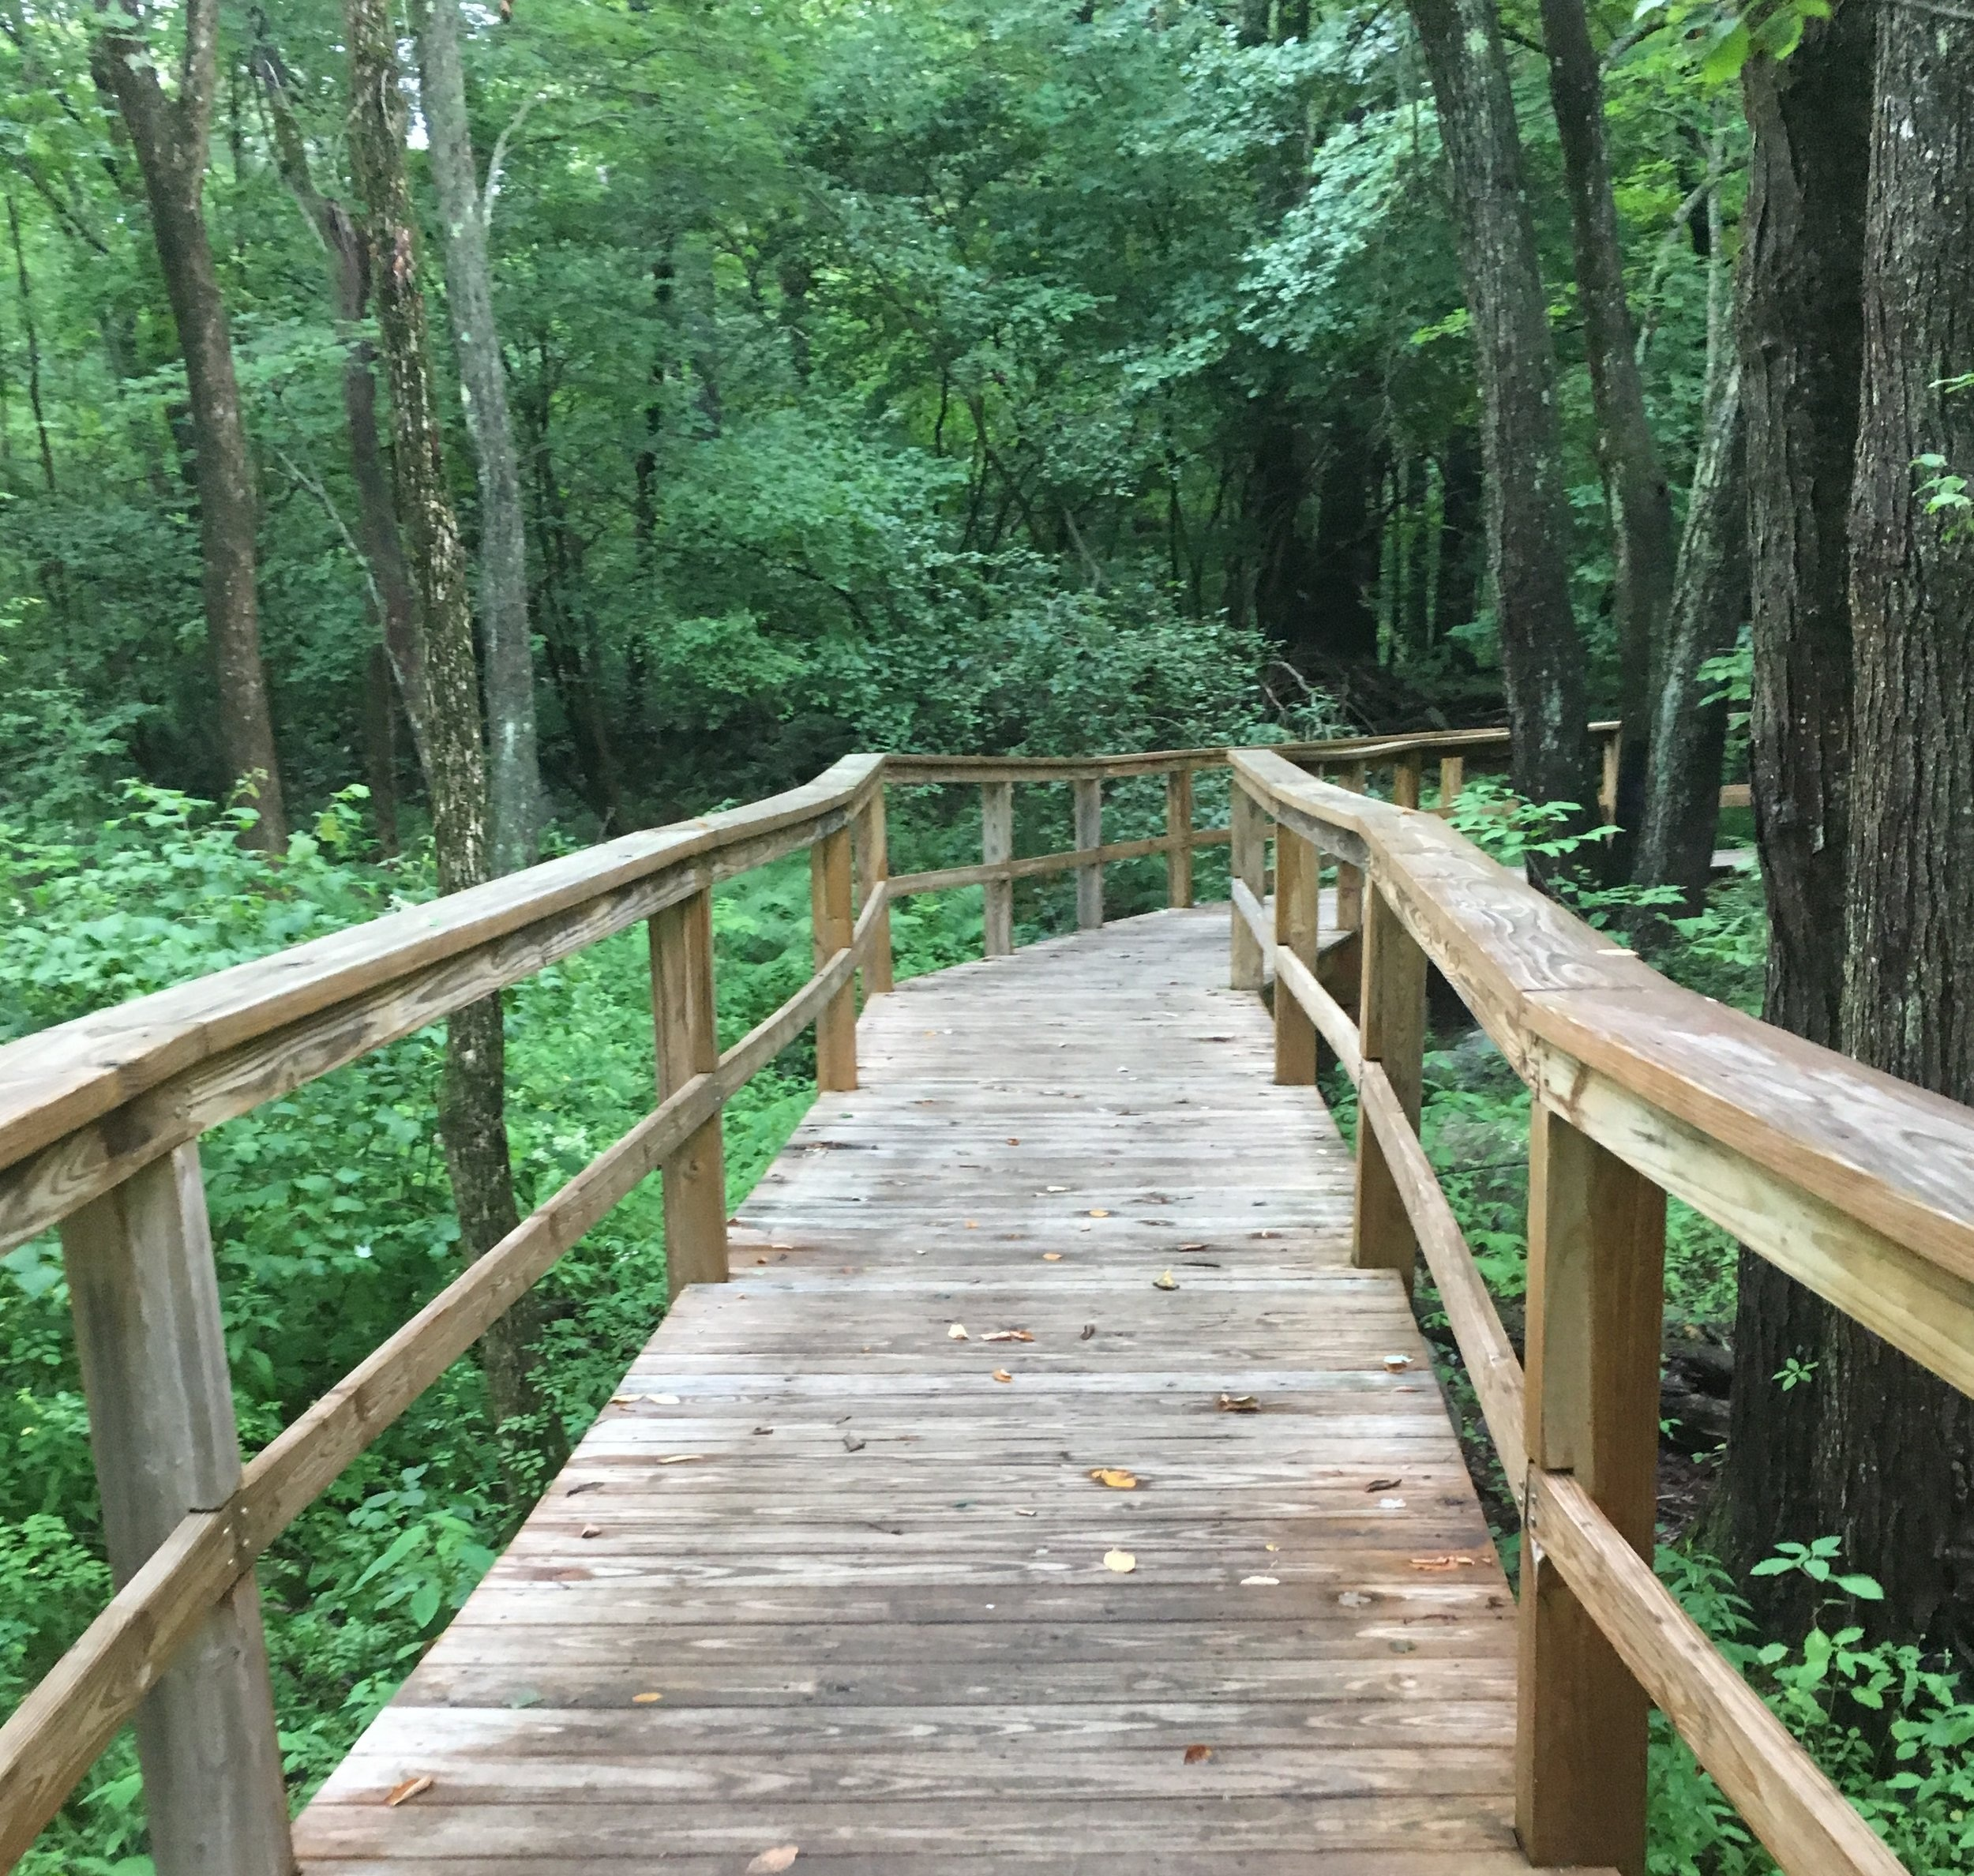 Bridges along the Wildflower Loop Trail at the Acton Arboretum wander through woods of varying shades of green with assorted bark in taupes, browns, and grays,